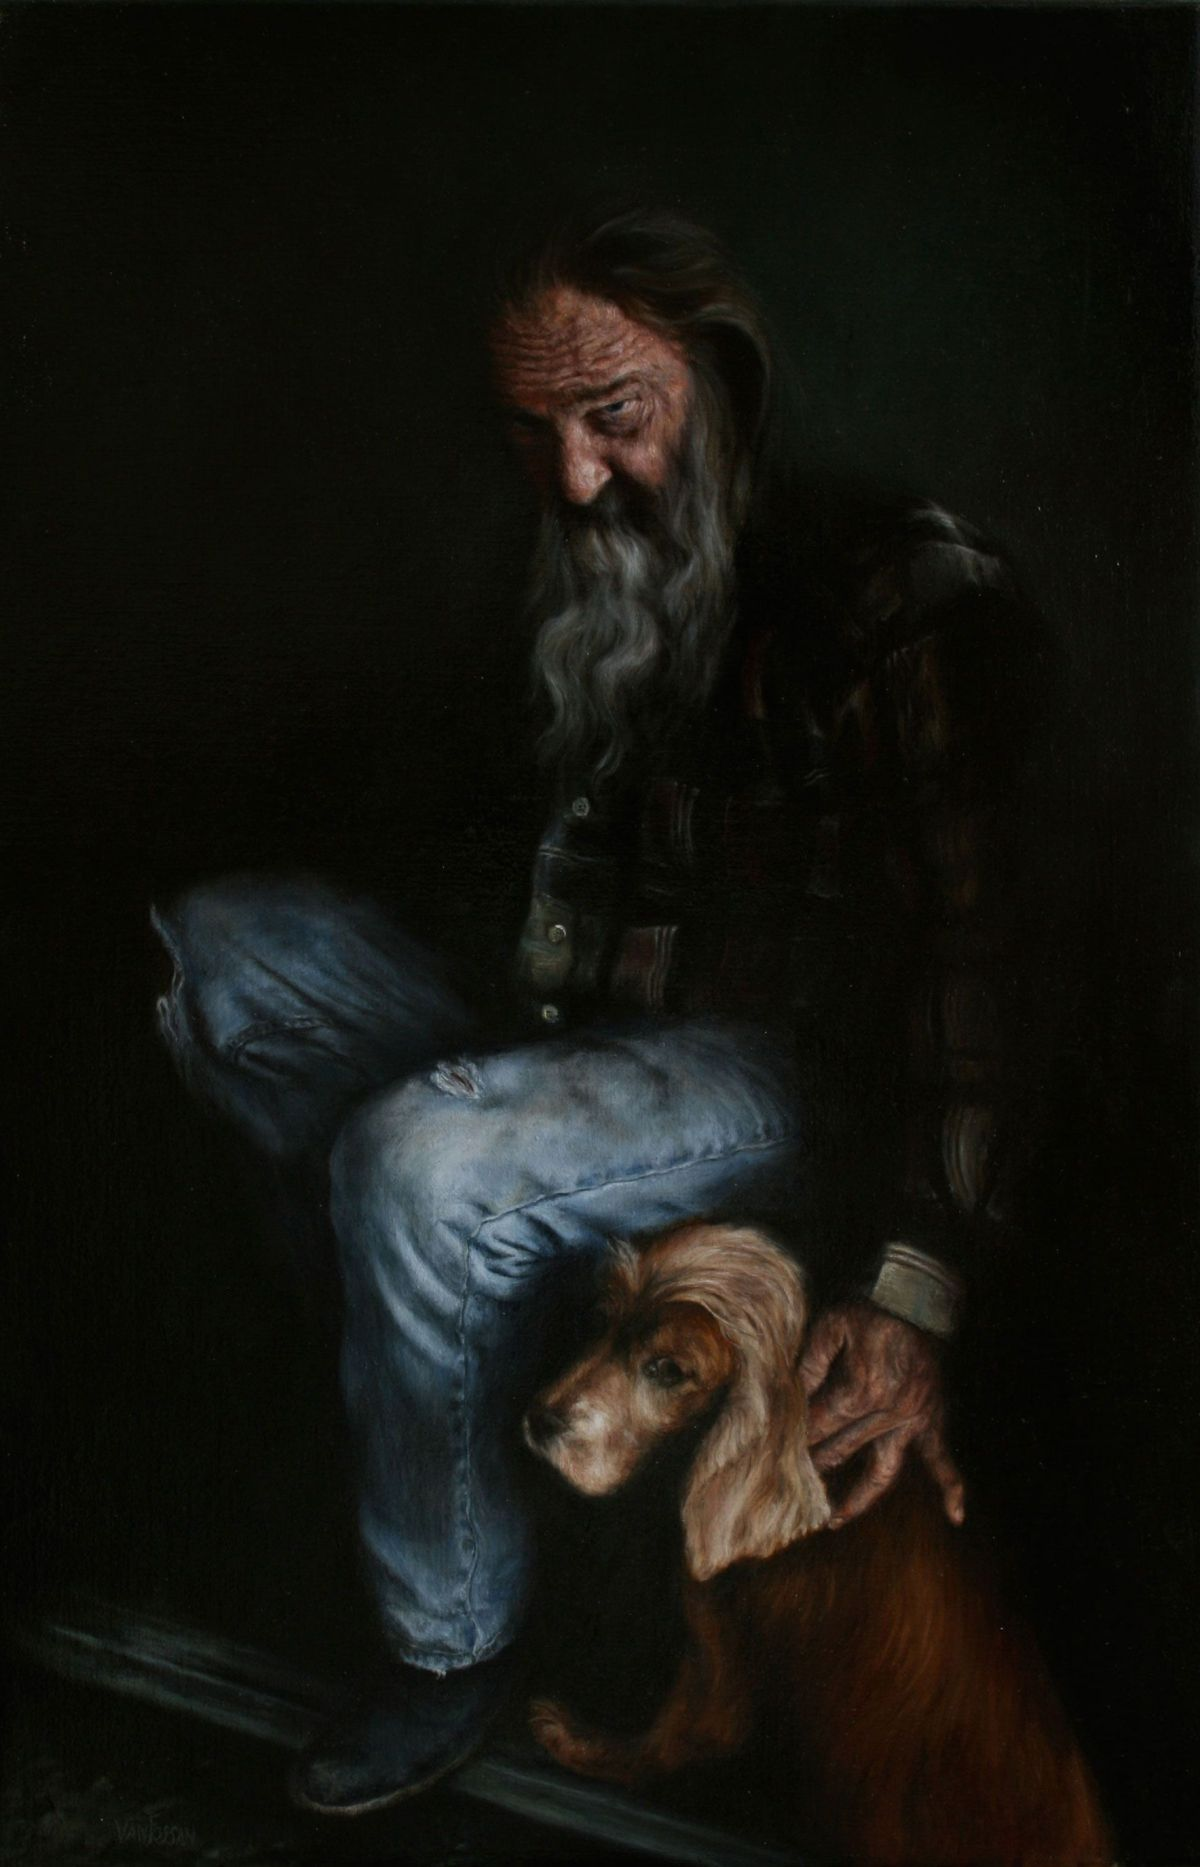 Old Man and His Dog by James Van Fossan